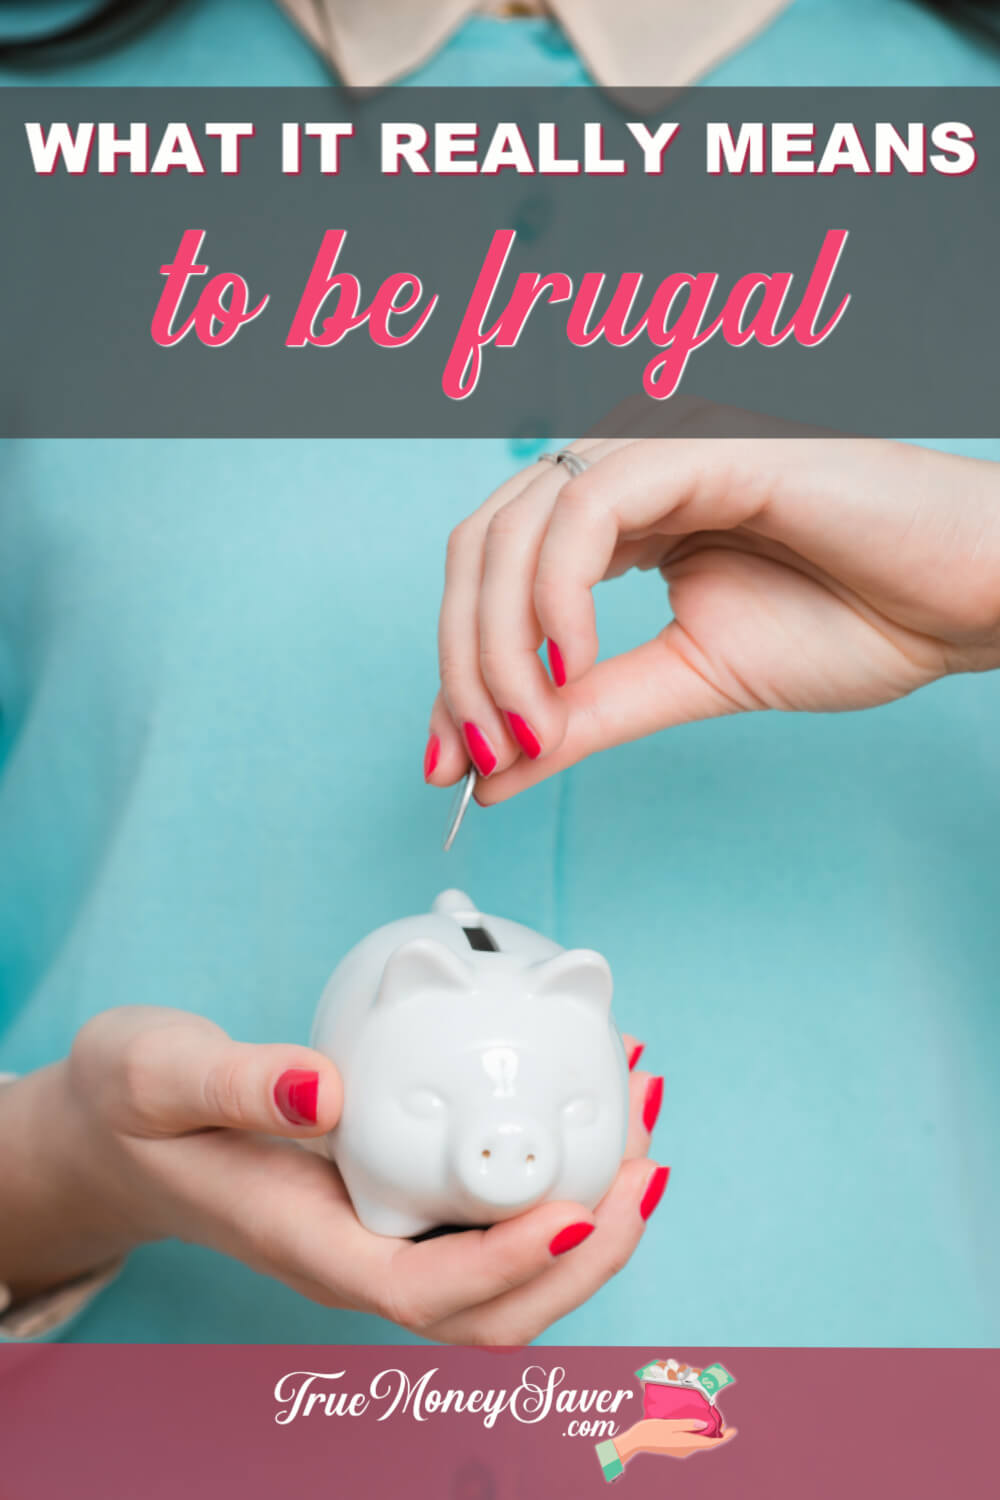 Being frugal is different than being a cheapskate it\'s learning to live smarter so that you can afford to live the life you want later. These tips will clarify the difference so you can keep more money in your pocket! #truecouponing #saving #frugal #cheap #frugalliving